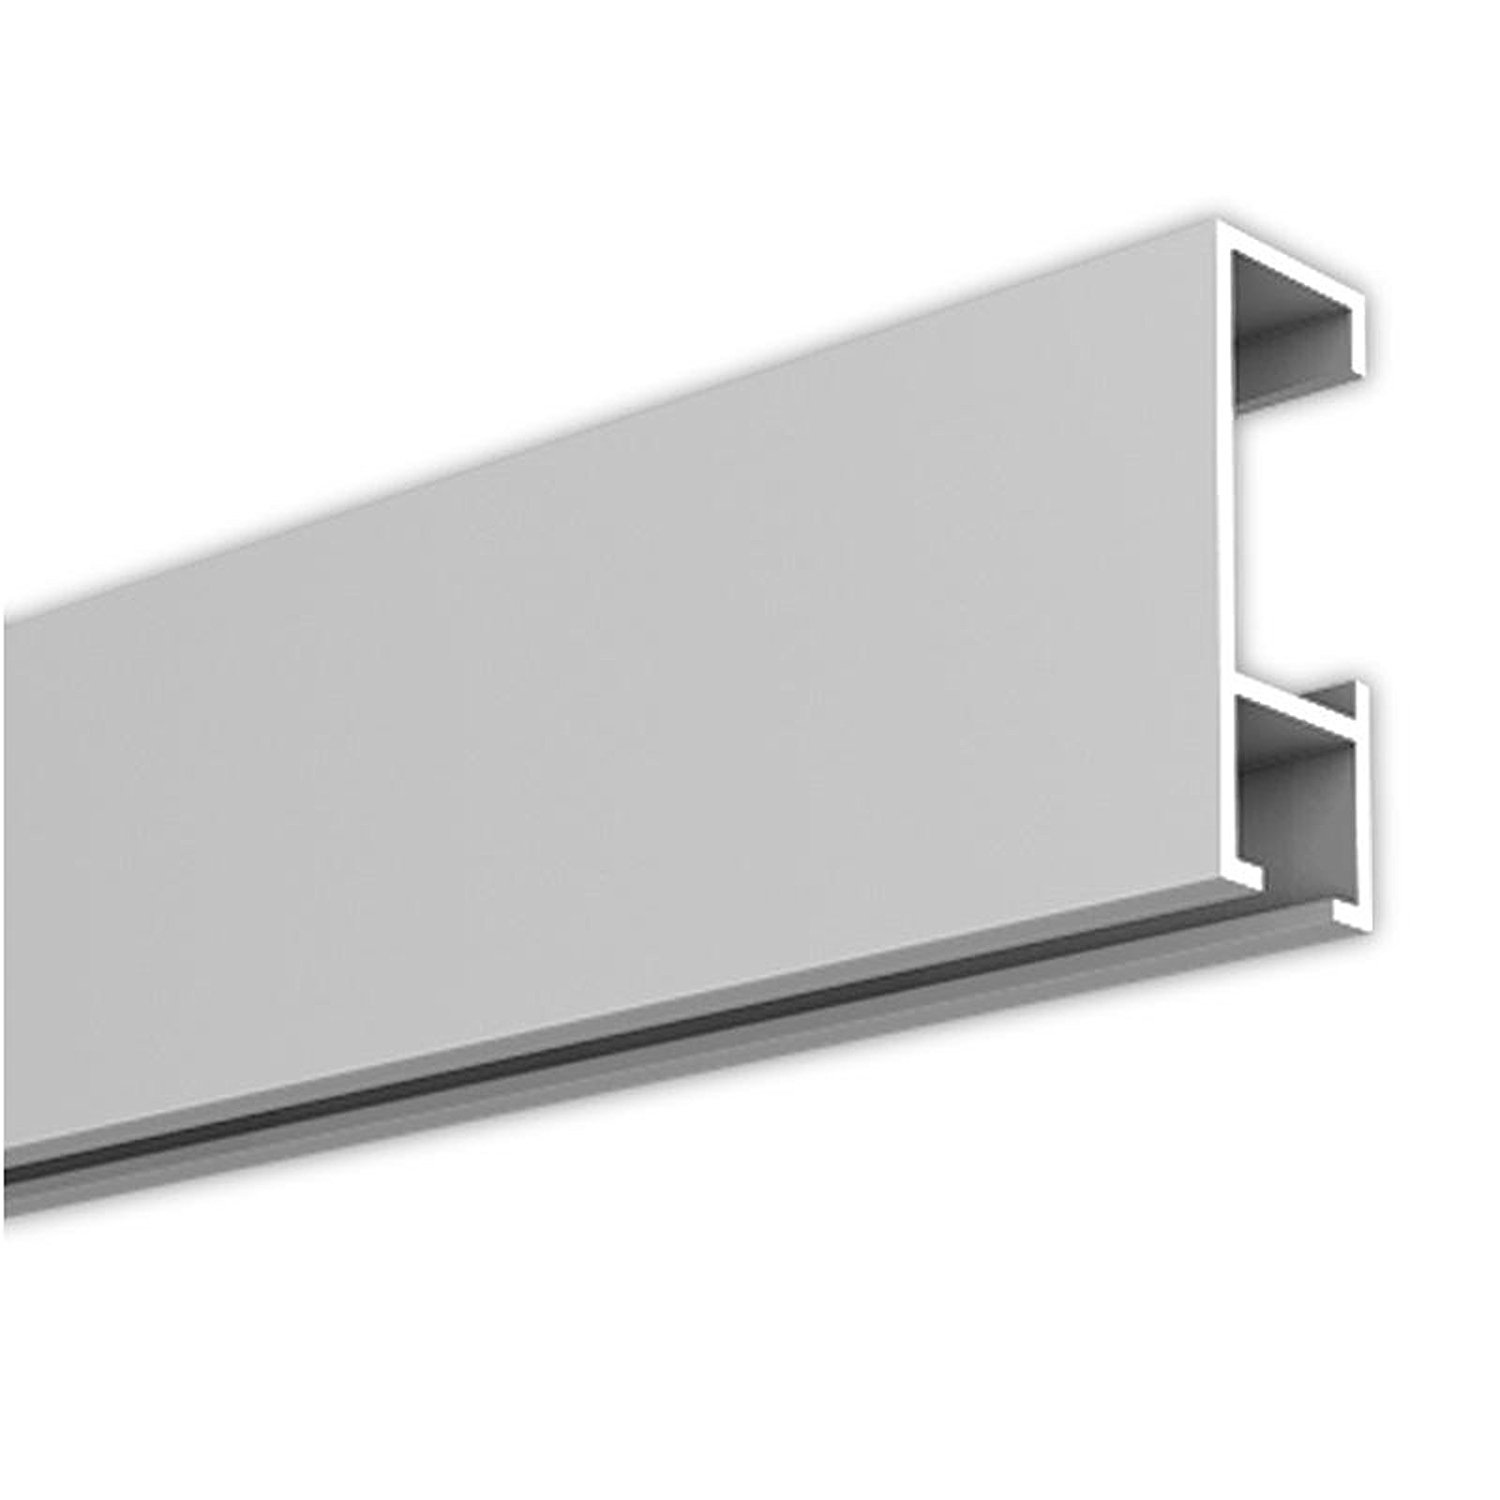 4m picture hanging kit 13,12 ft, 4,374 yards picture rails gallery rails with accessories in white or silver